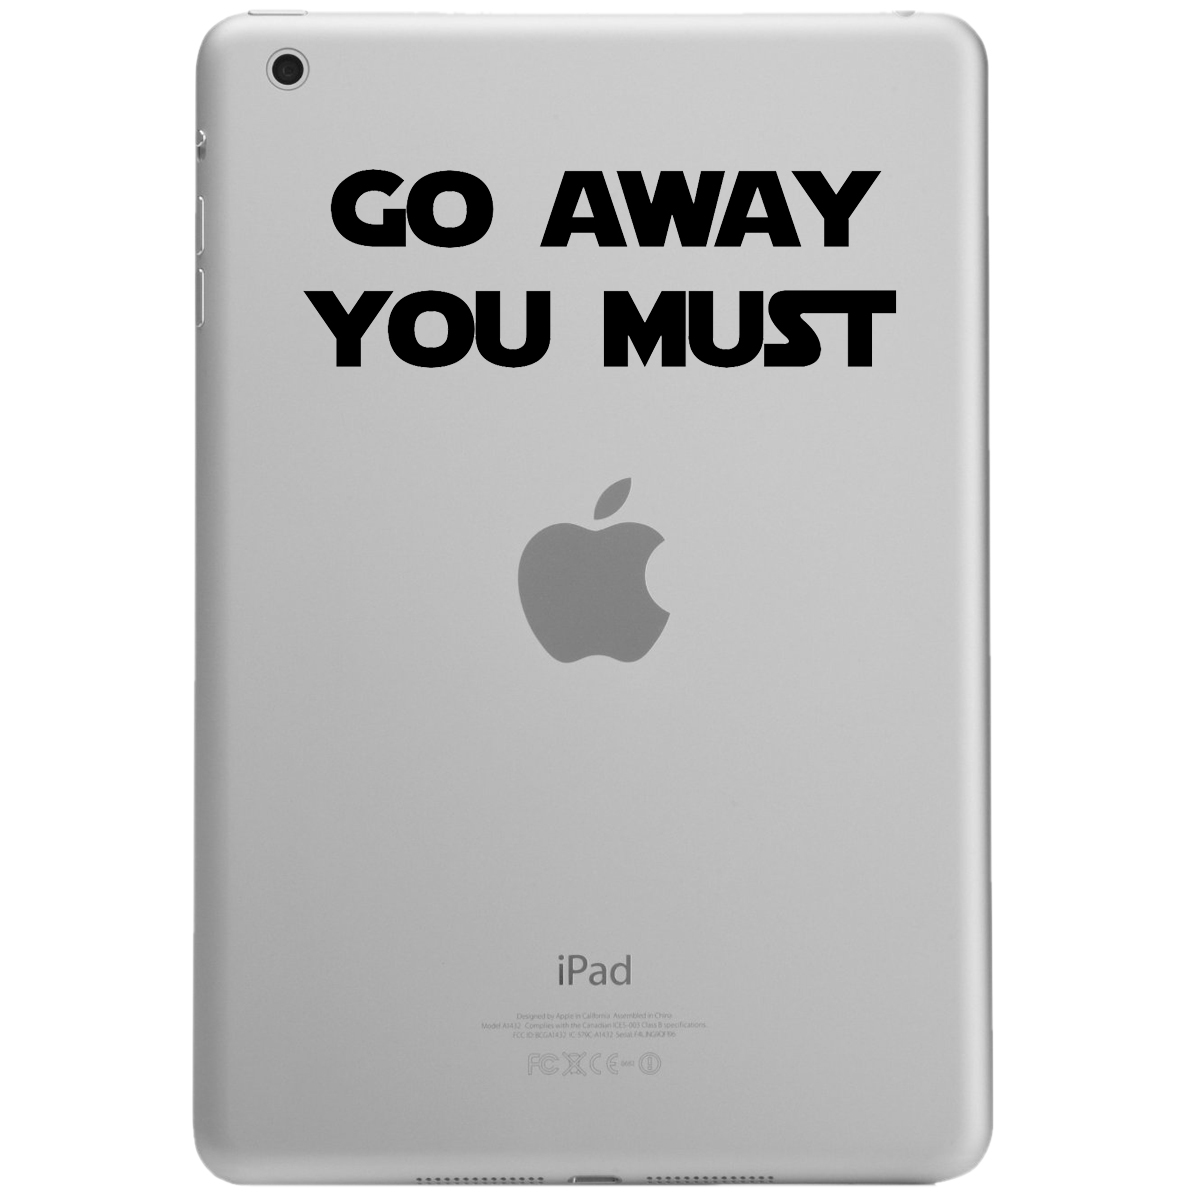 Funny Yoda Parody Go Away You Must iPad Tablet Vinyl Sticker Decal